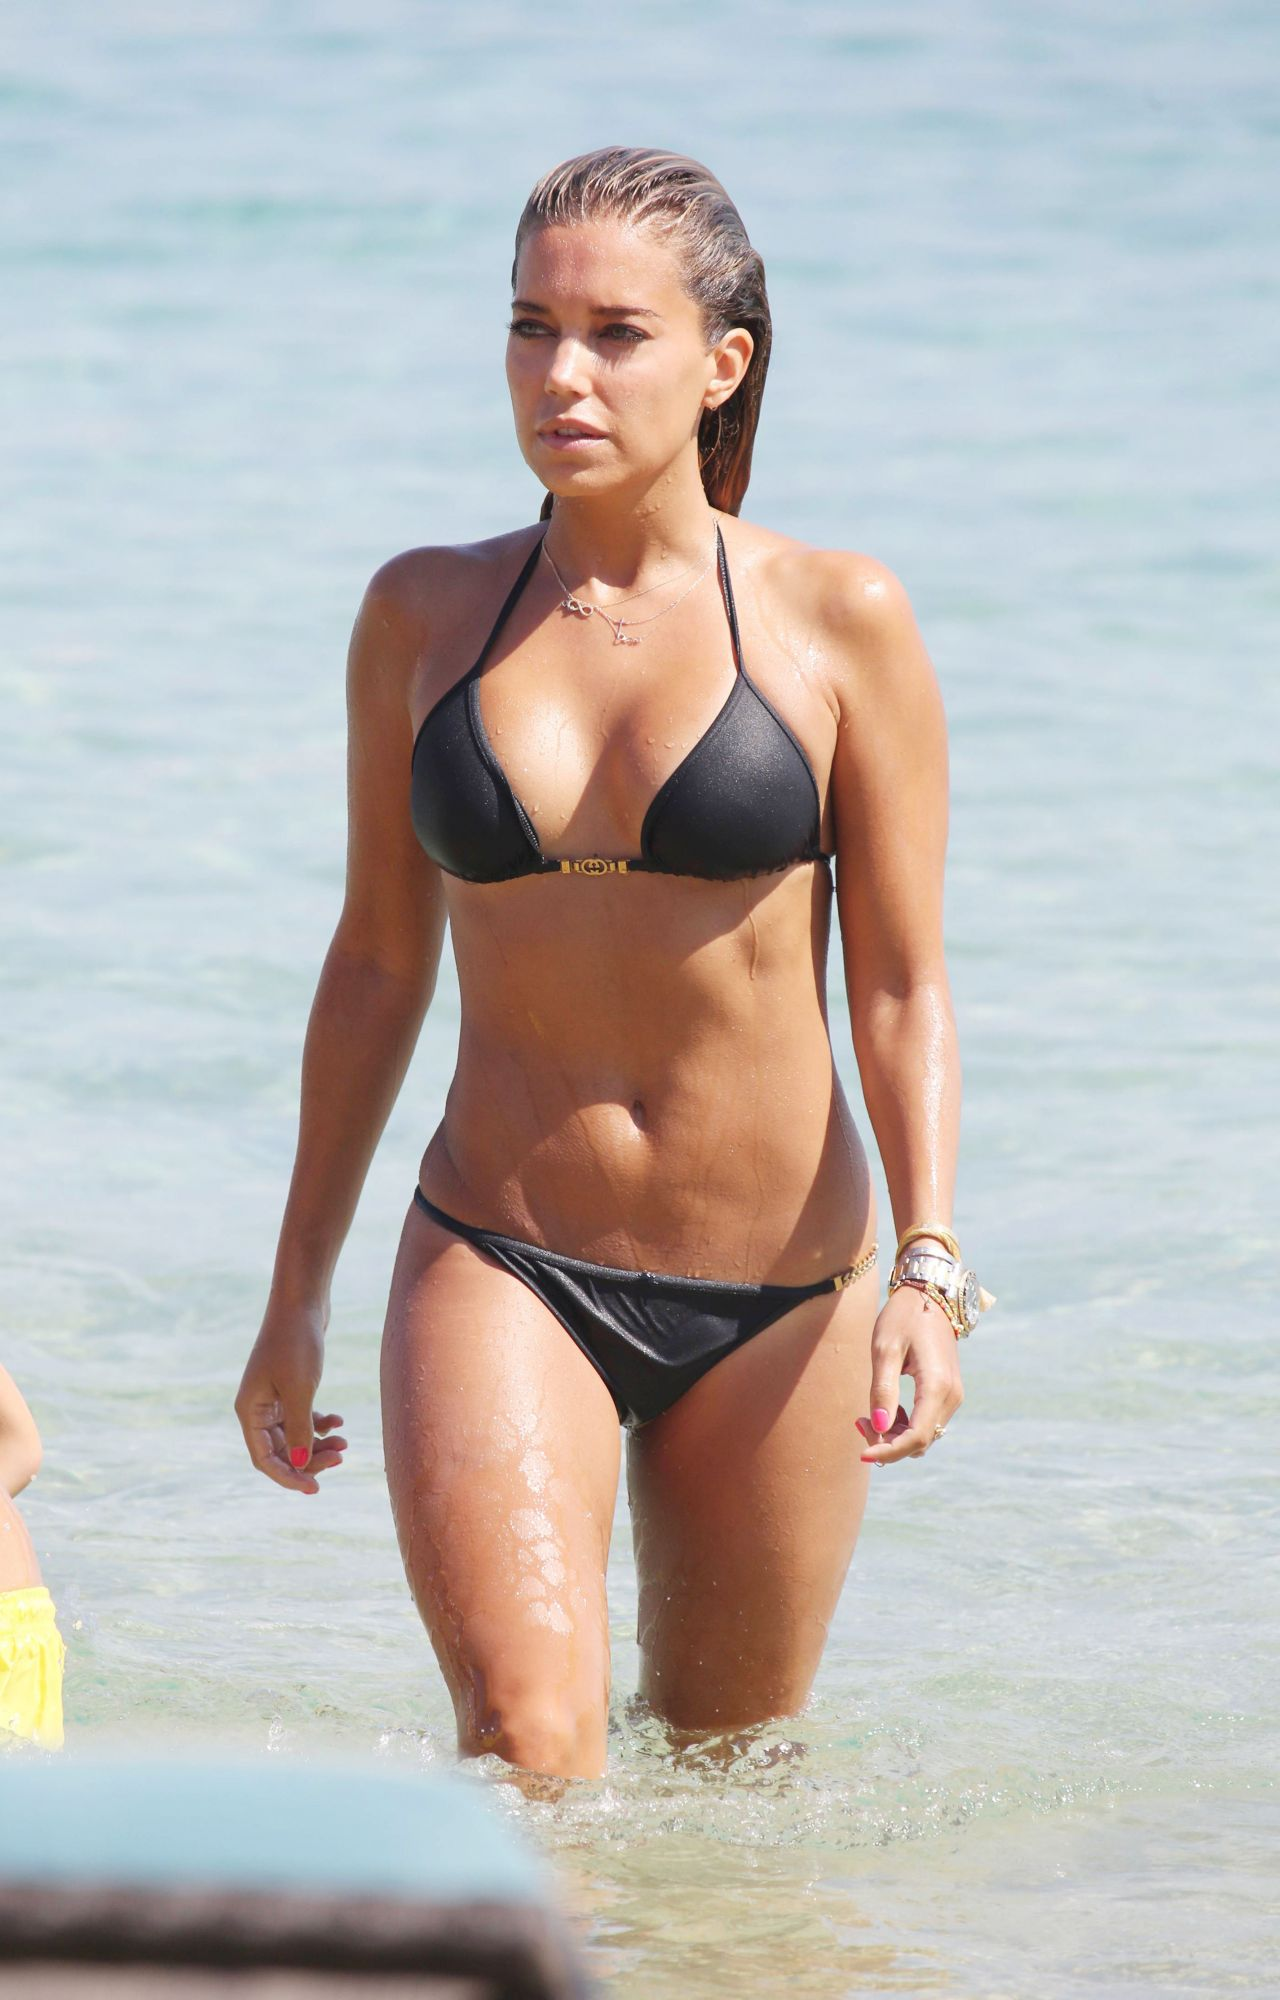 Sylvie Meis in Black Bikini on the beach in Miami Pic 20 of 35